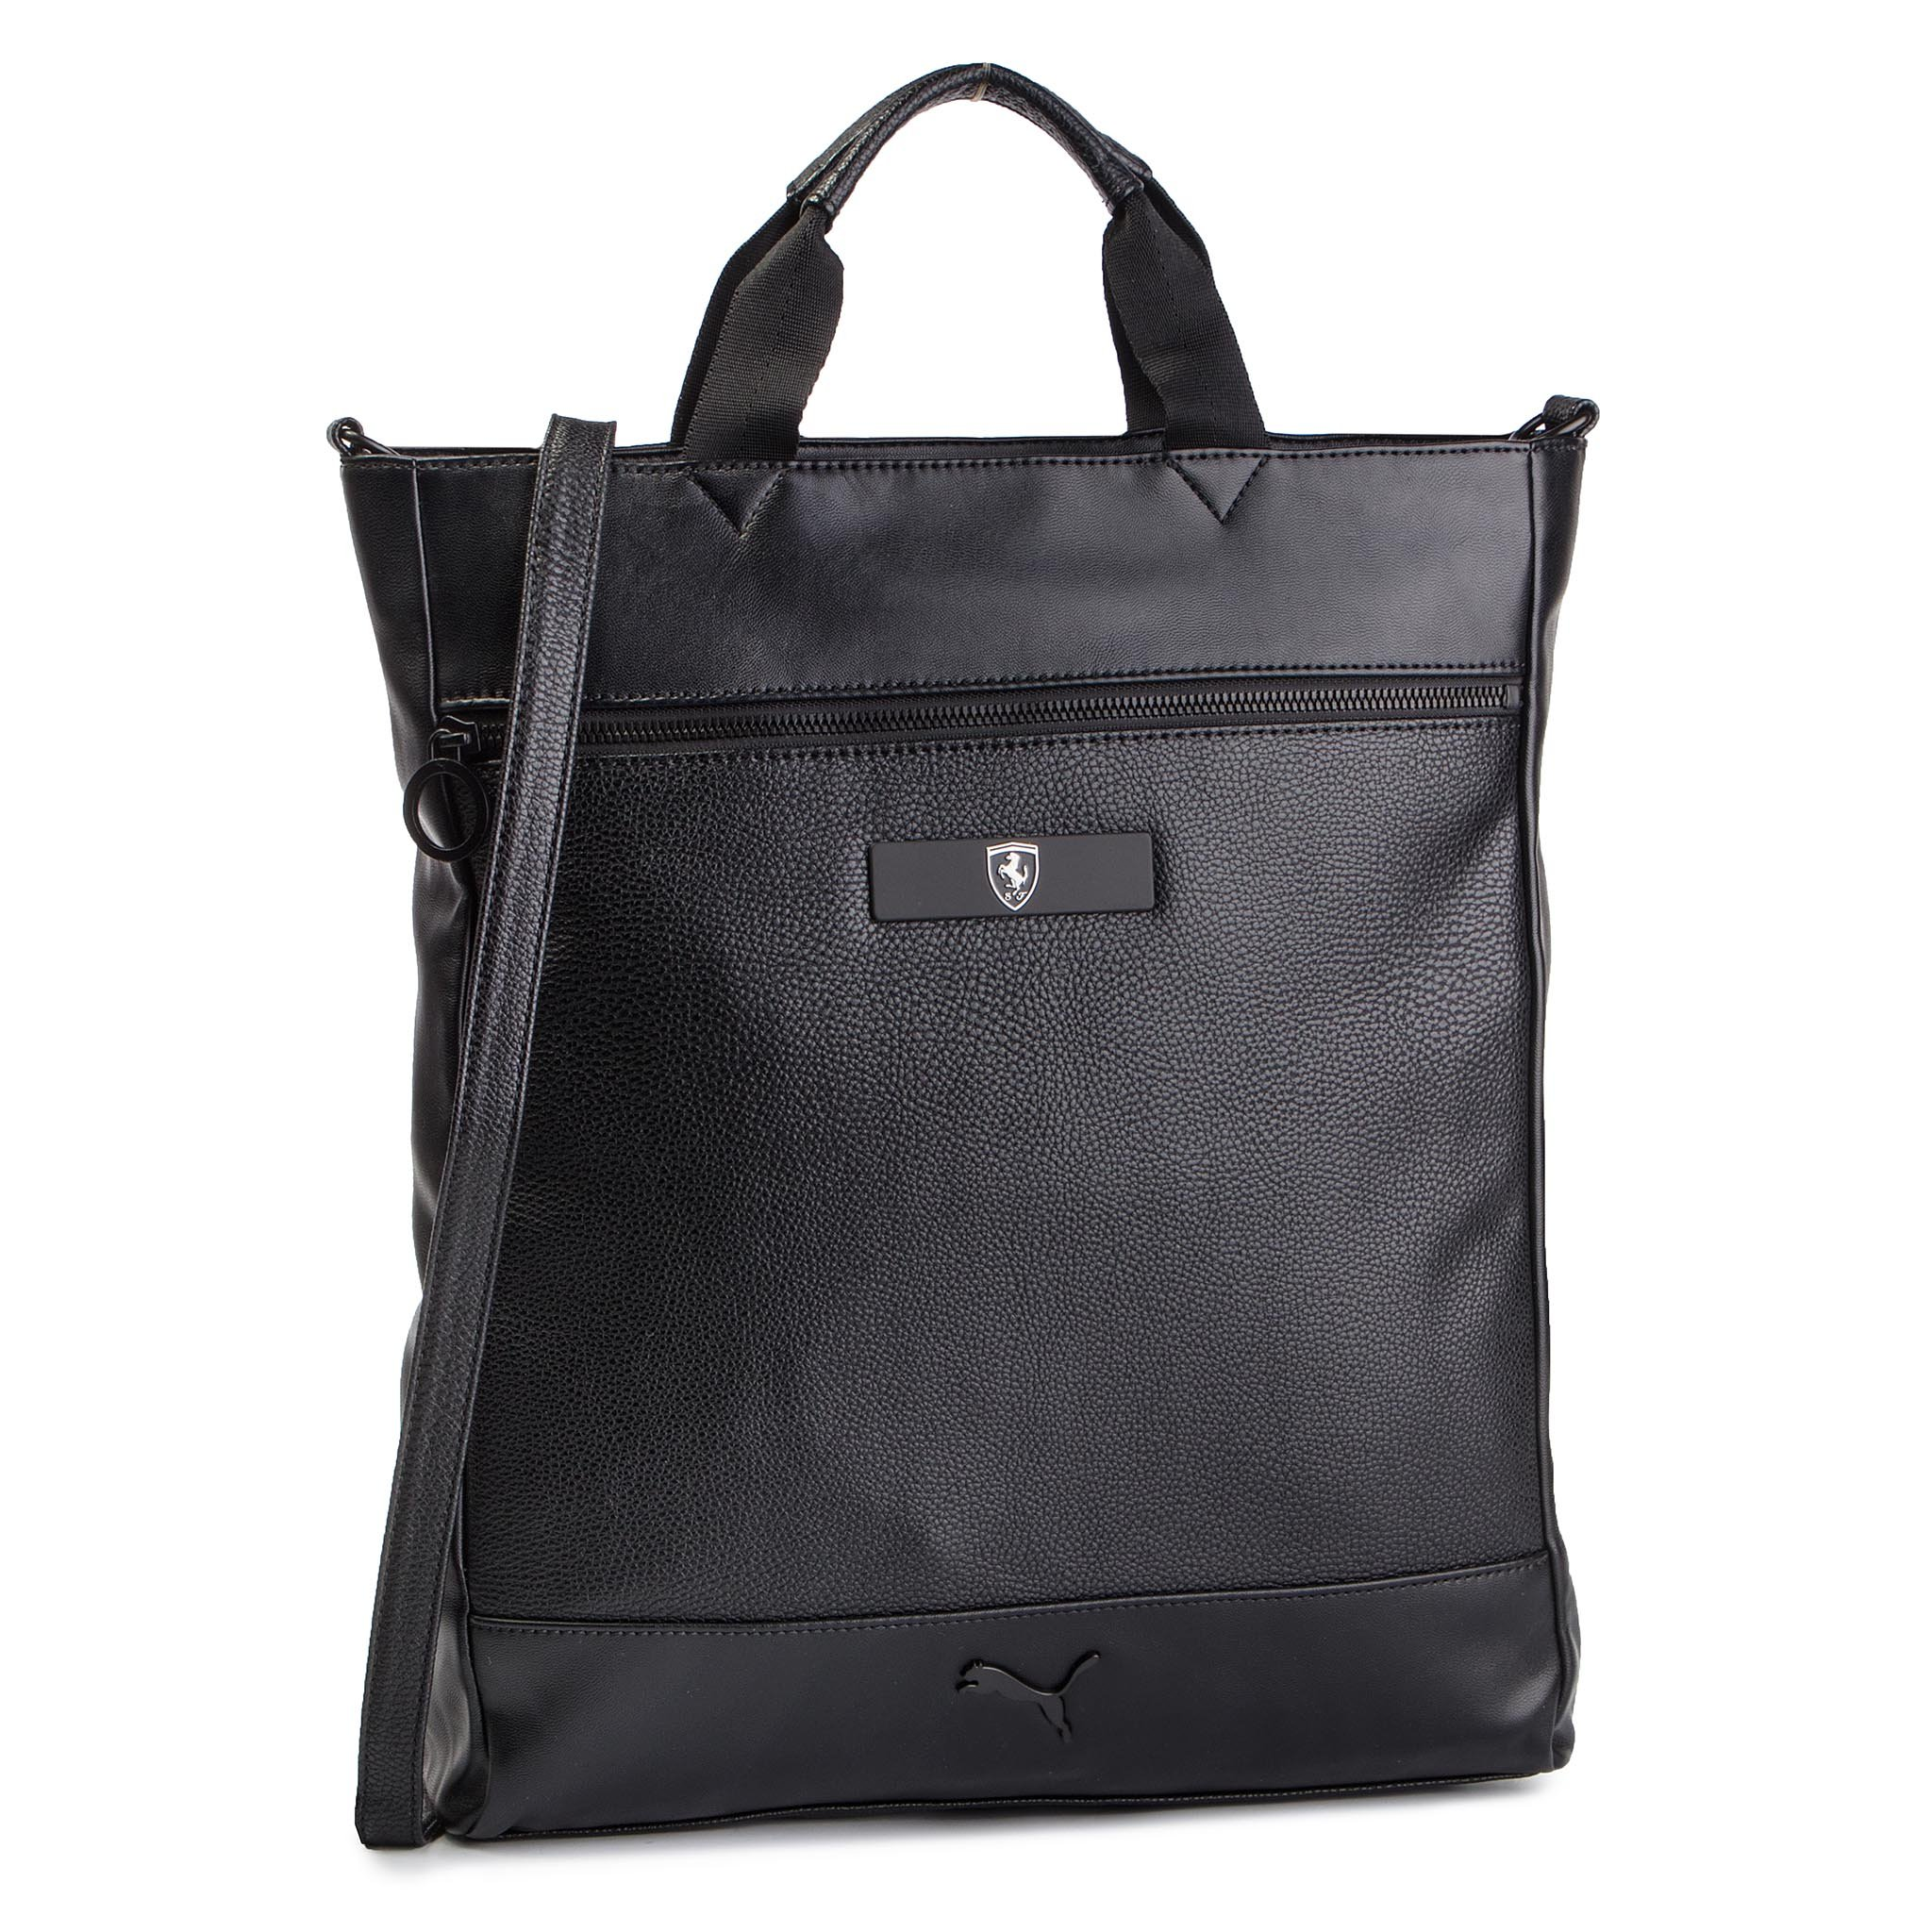 Torba na laptopa PUMA – Sf Ls Shopper 075863 01 Puma Black